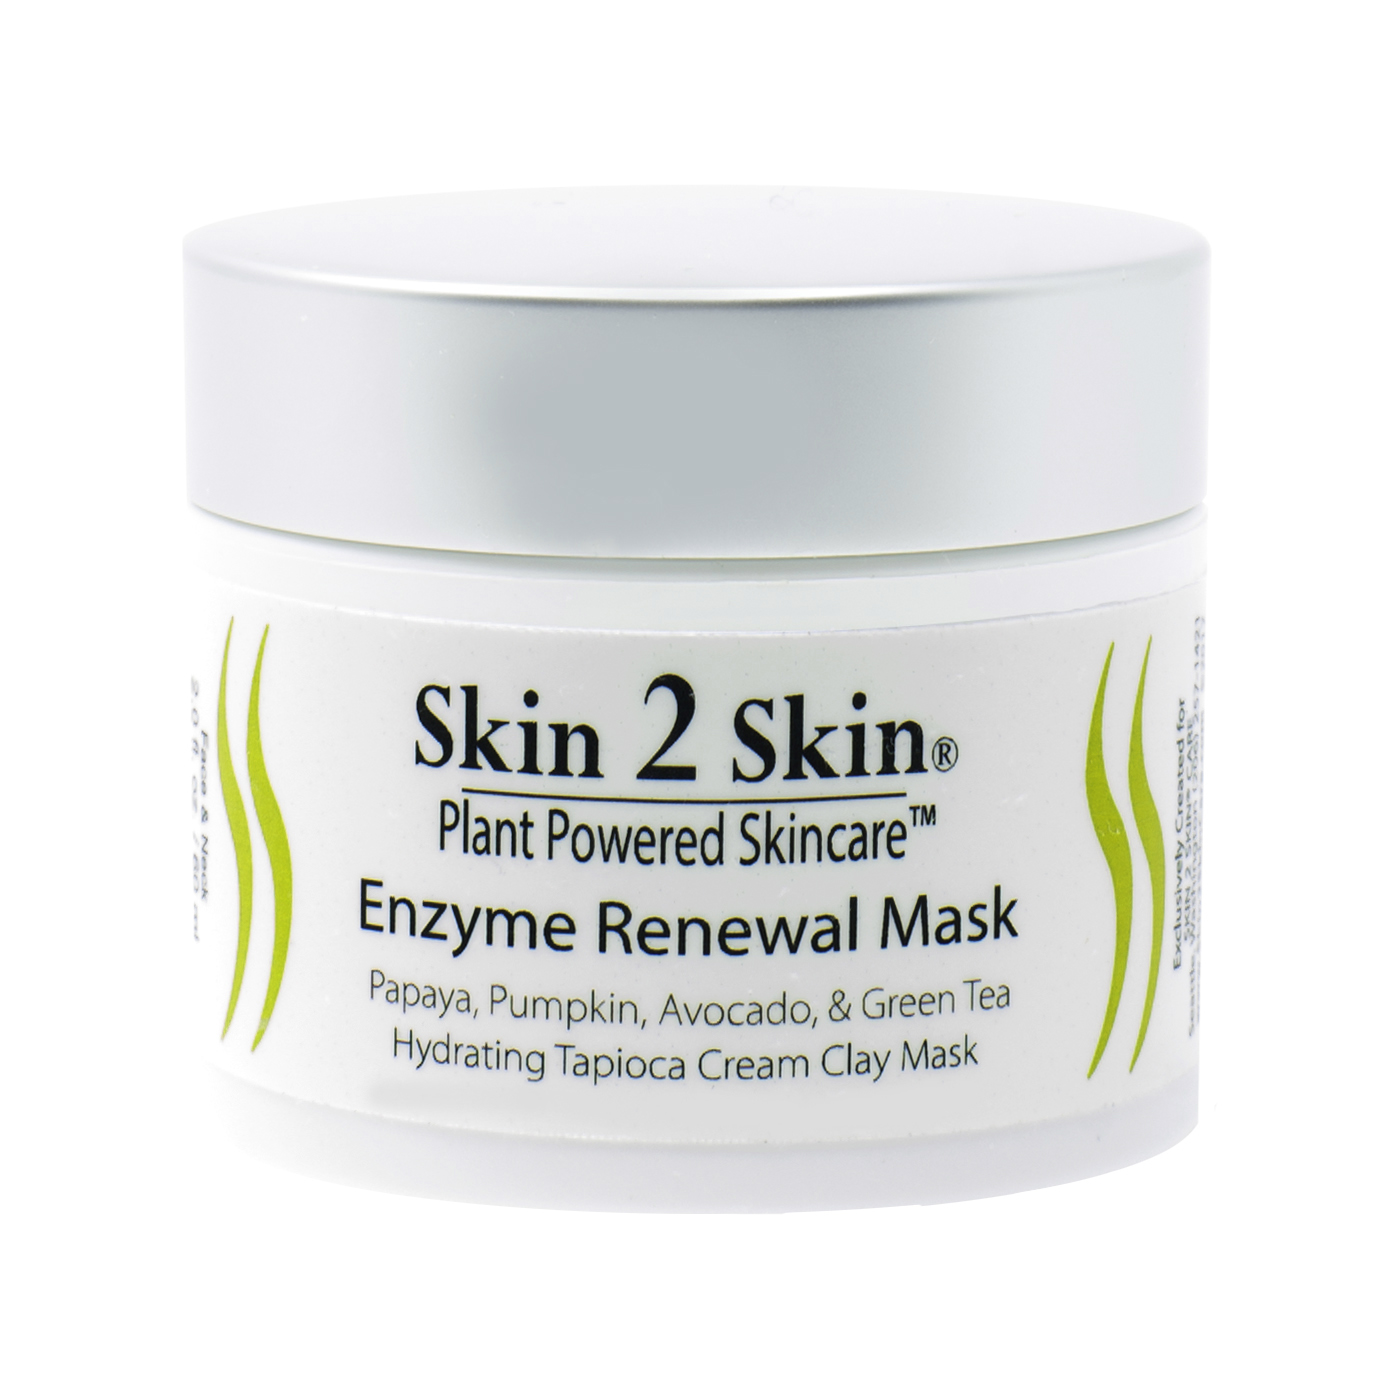 Skin 2 Skin Enzyme Renewal Mask, hydrating tapioca cream clay mask with Papaya, Pumpkin Seed, Avocado, and Green Tea